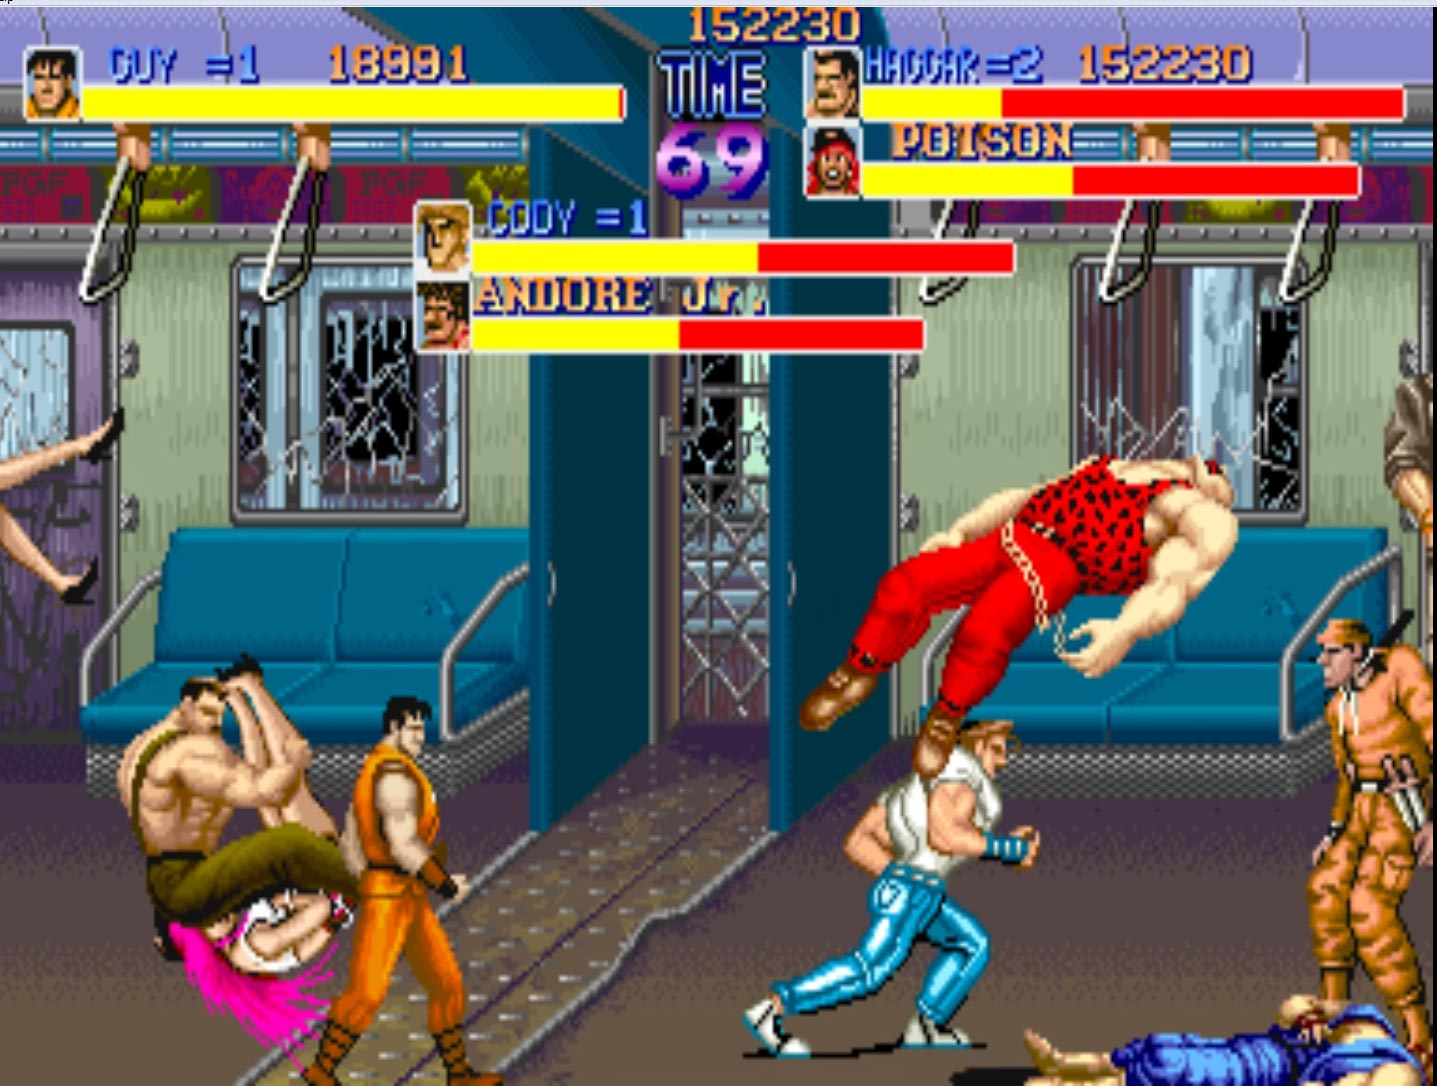 Final Fight X 3 4 out of 5 image gallery